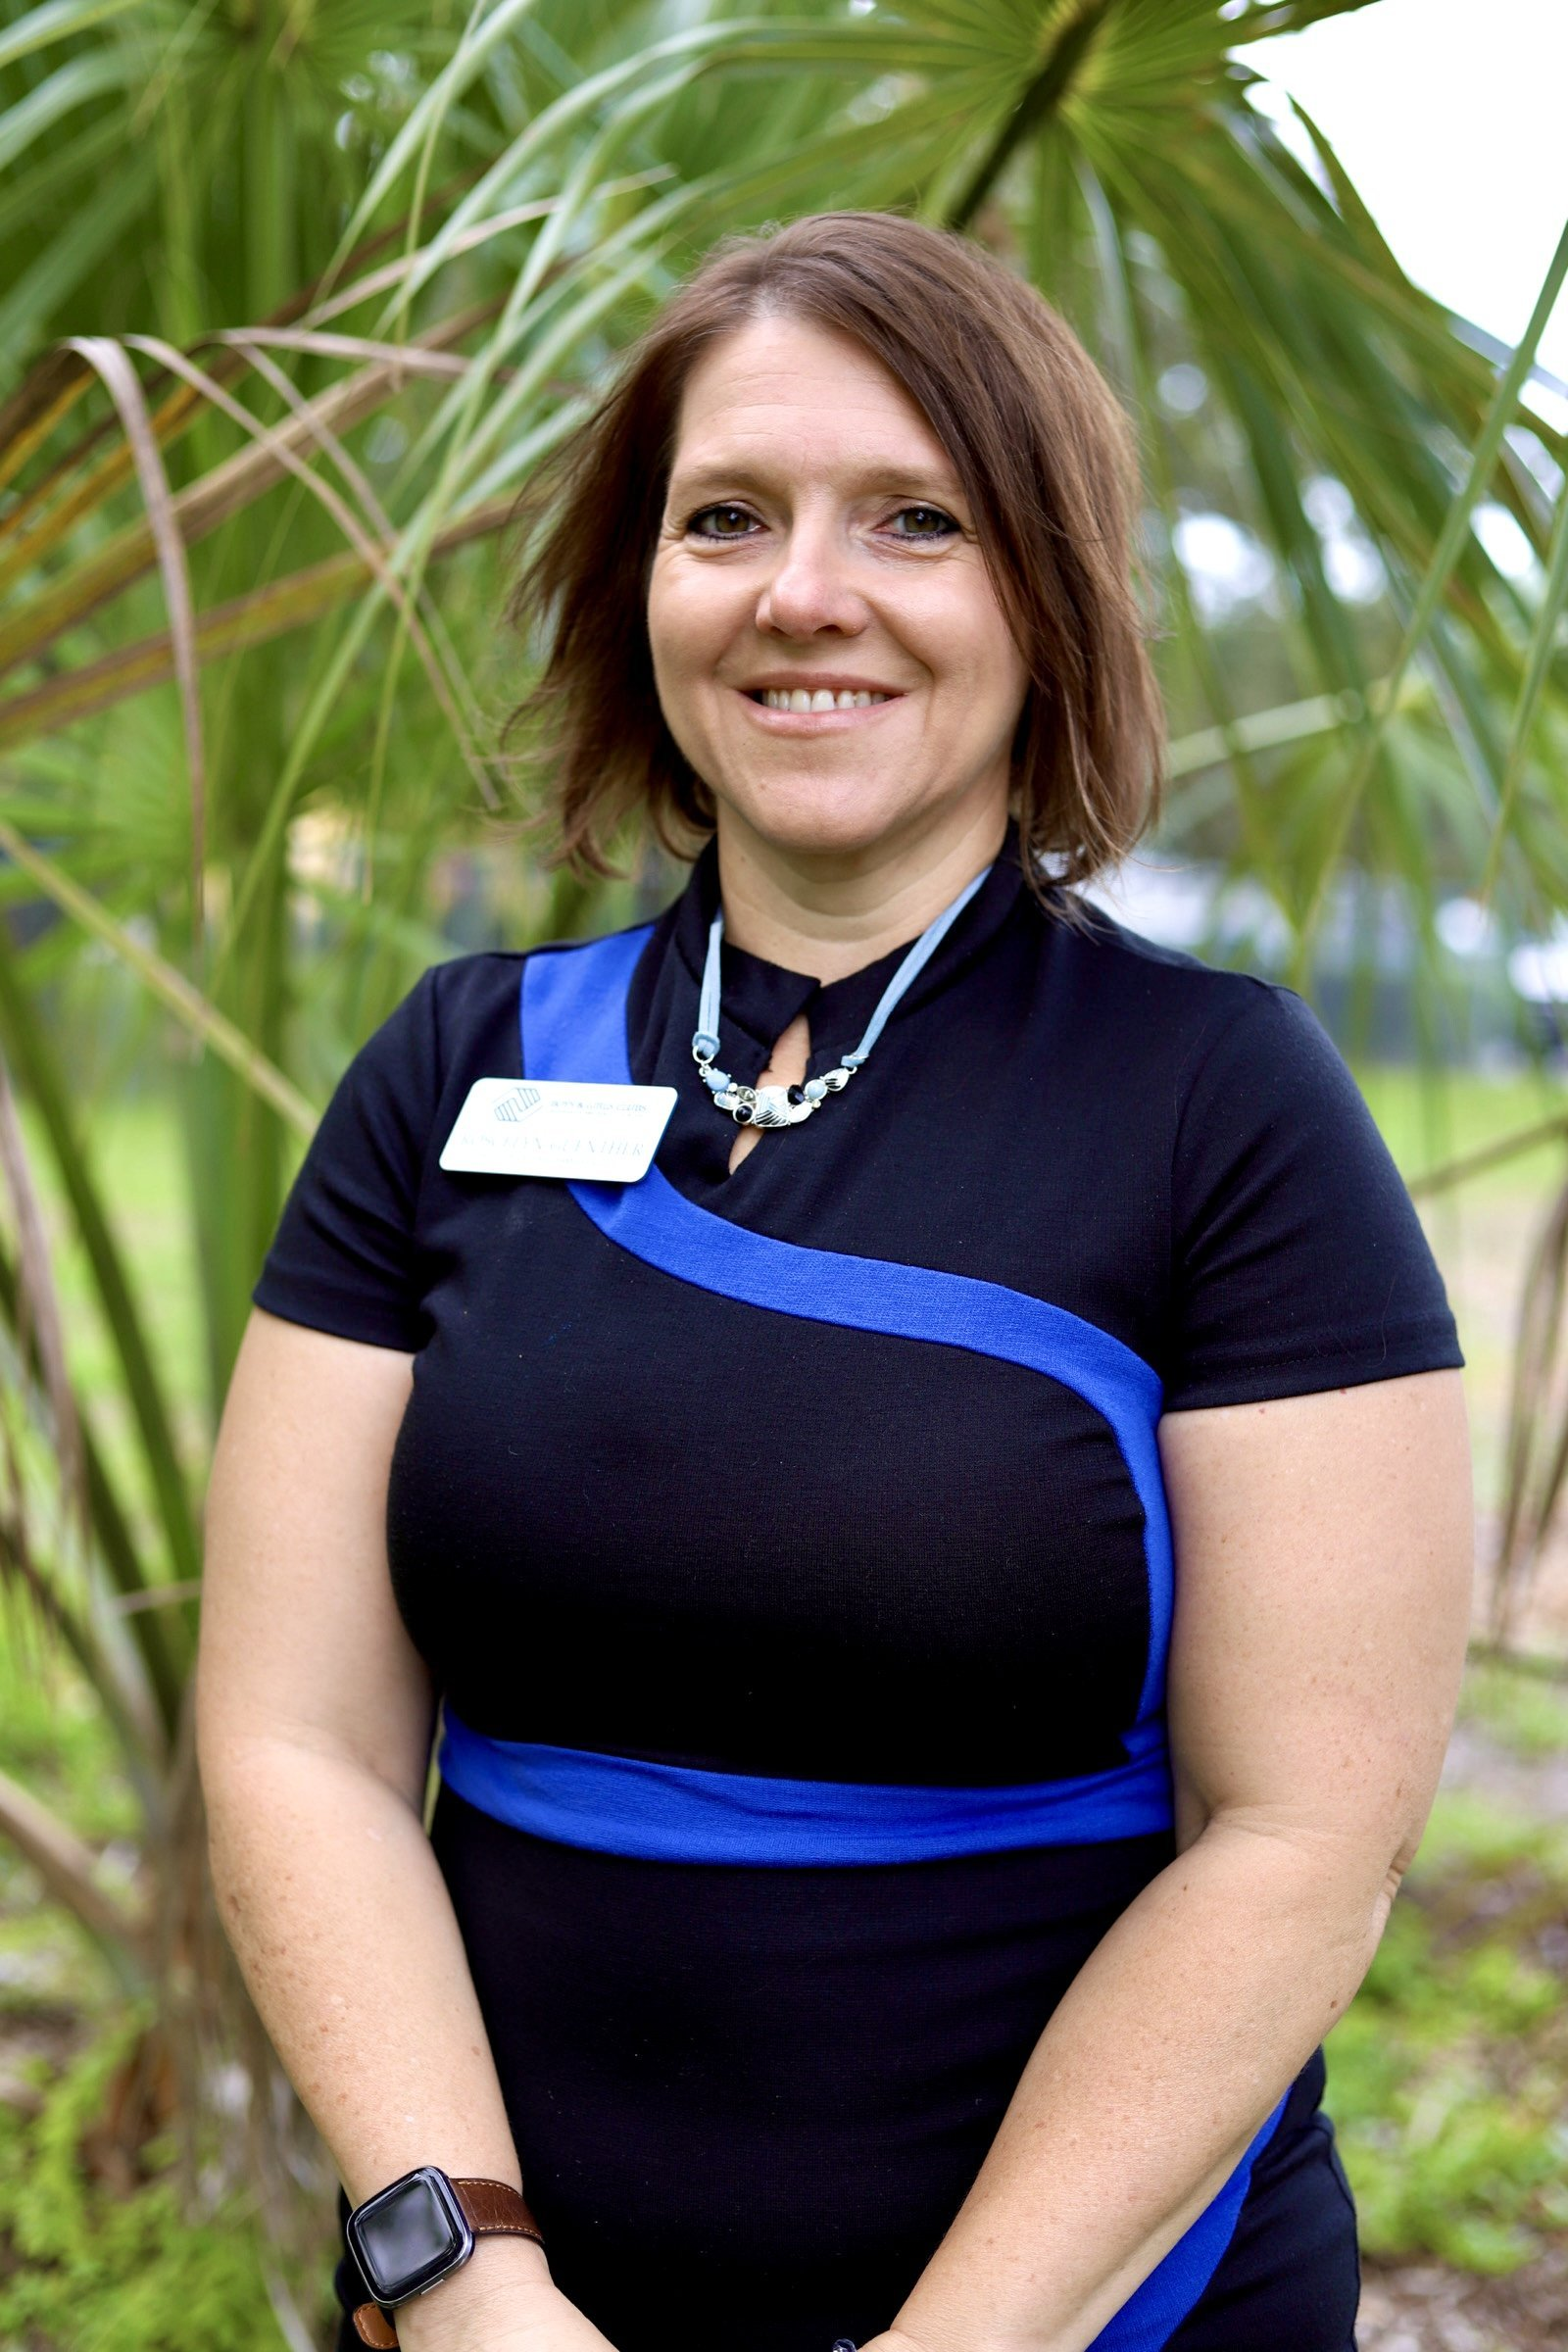 Boys & Girls Clubs Professional Selected for Leadership Sarasota Class of 2022